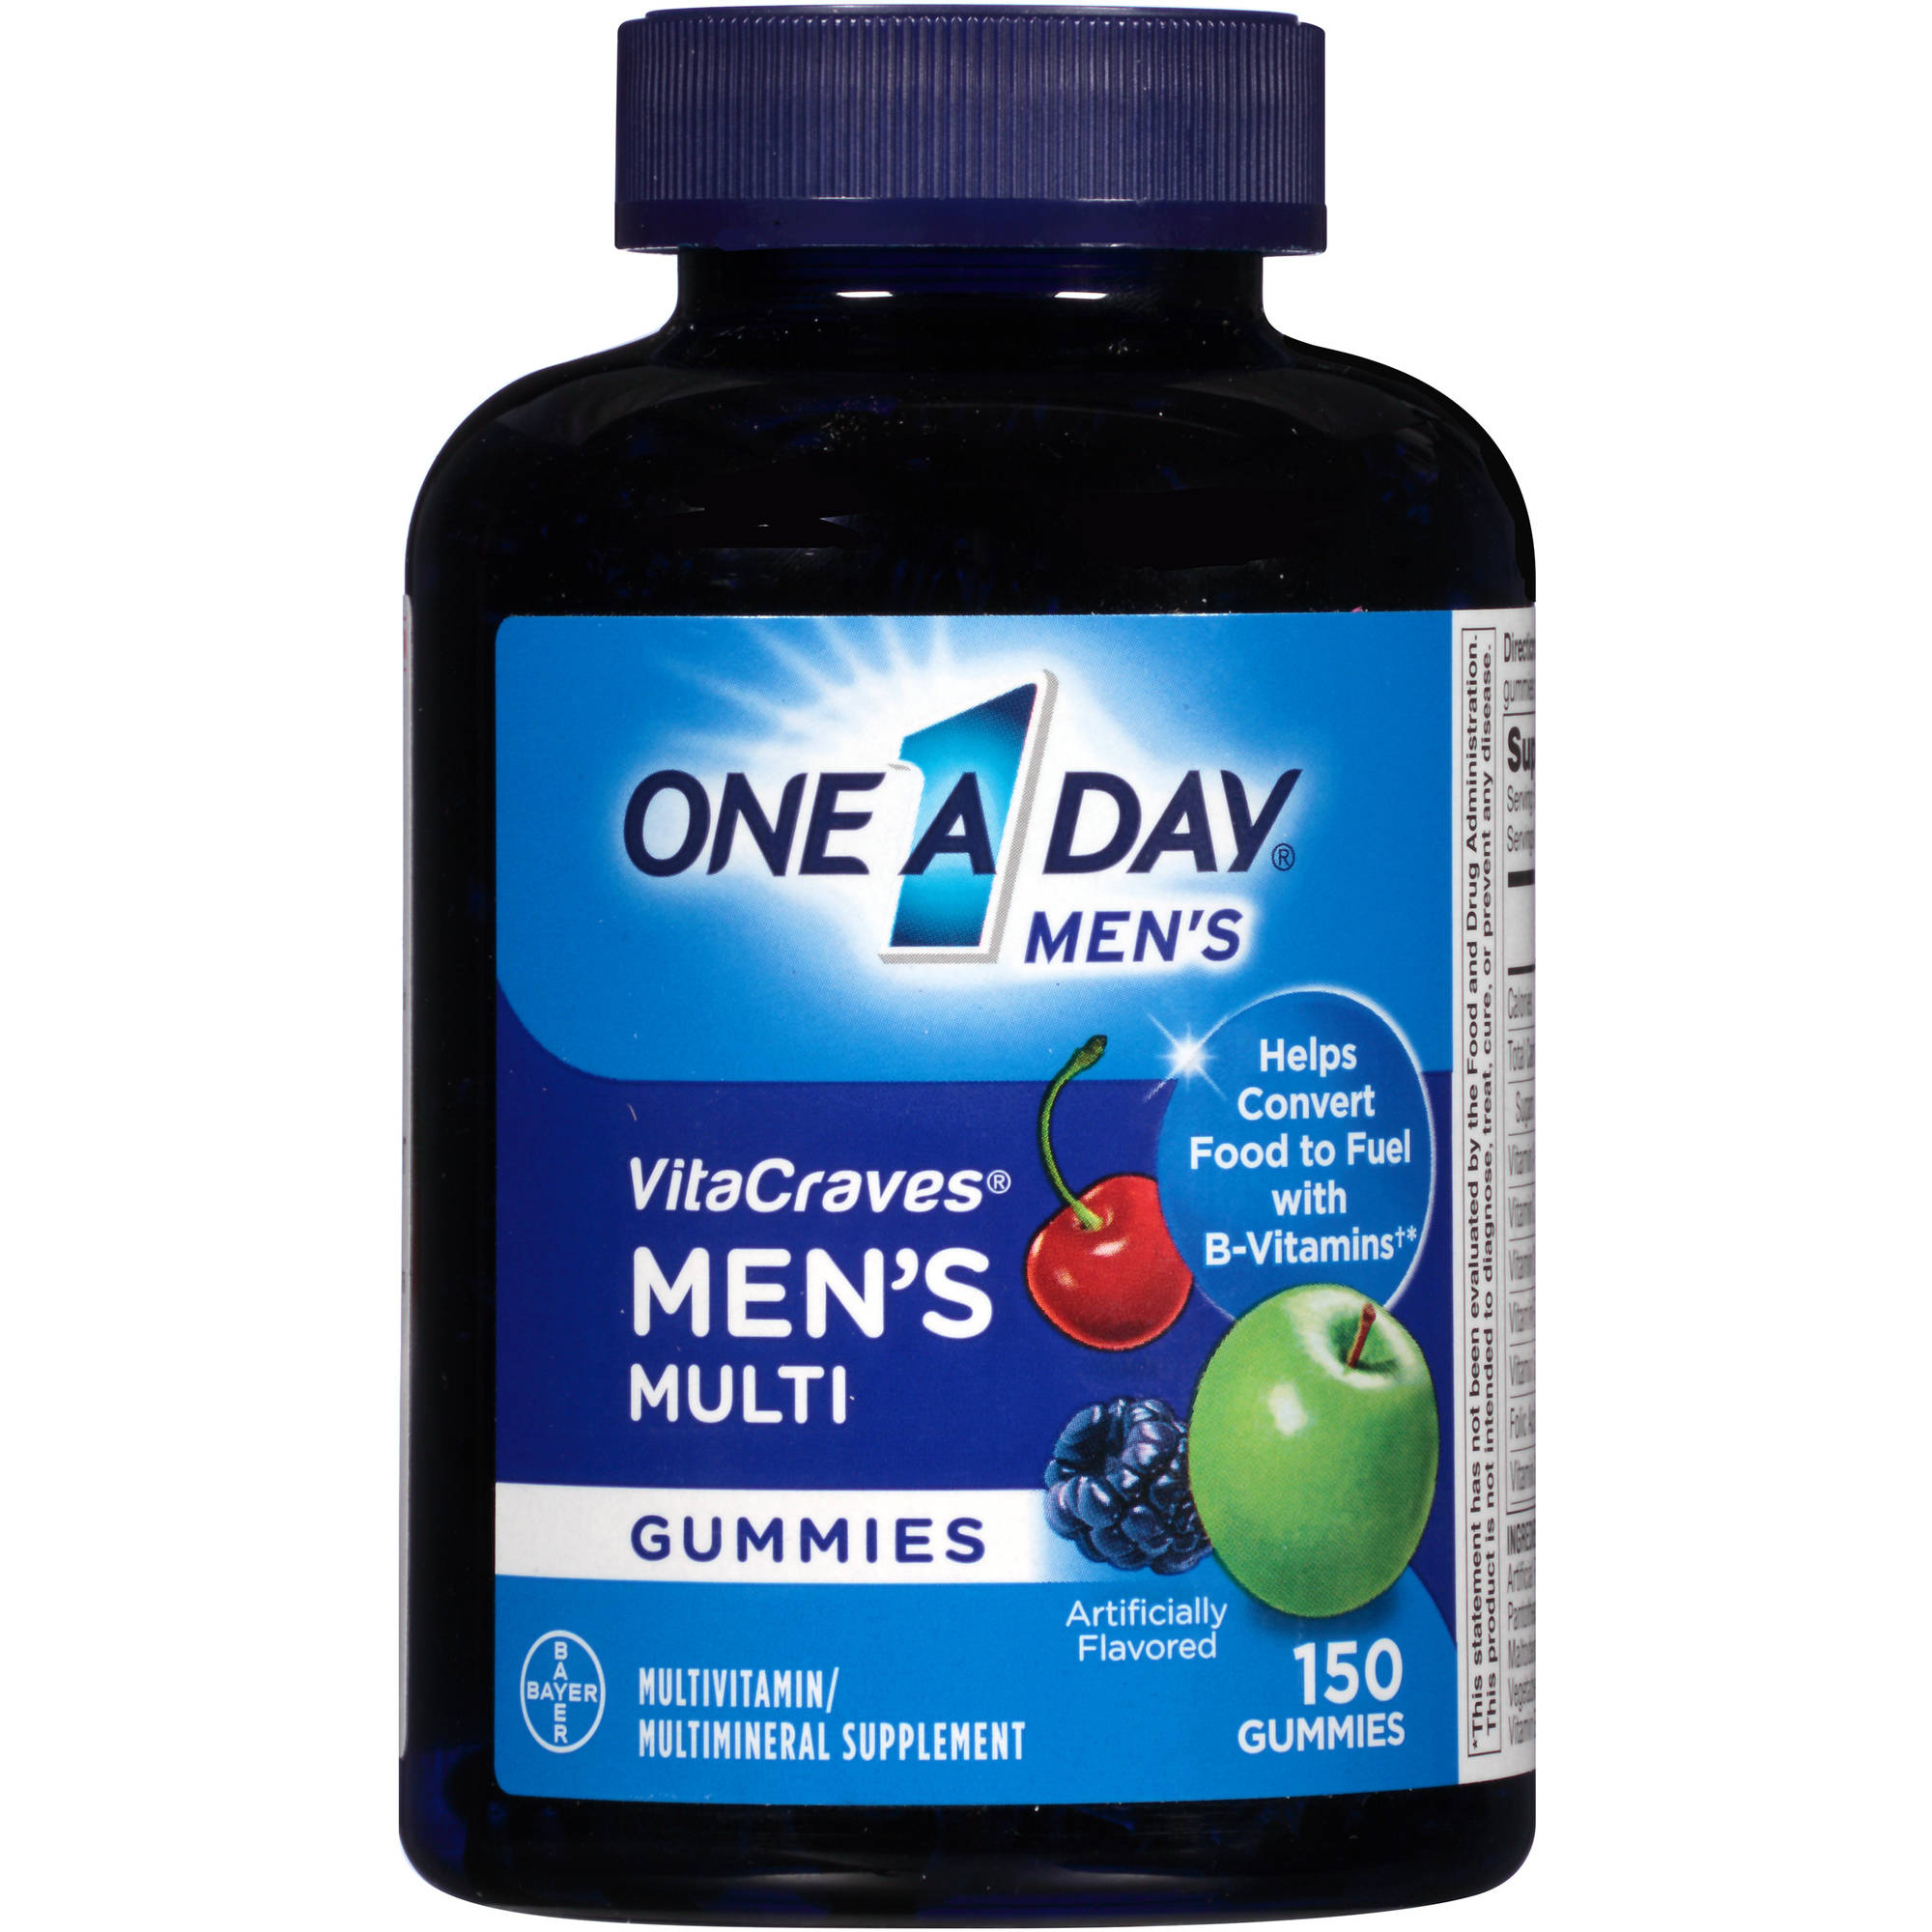 One a Day Men's VitaCraves Men's Gummies Multivitamin/Multimineral Supplement, 150 count